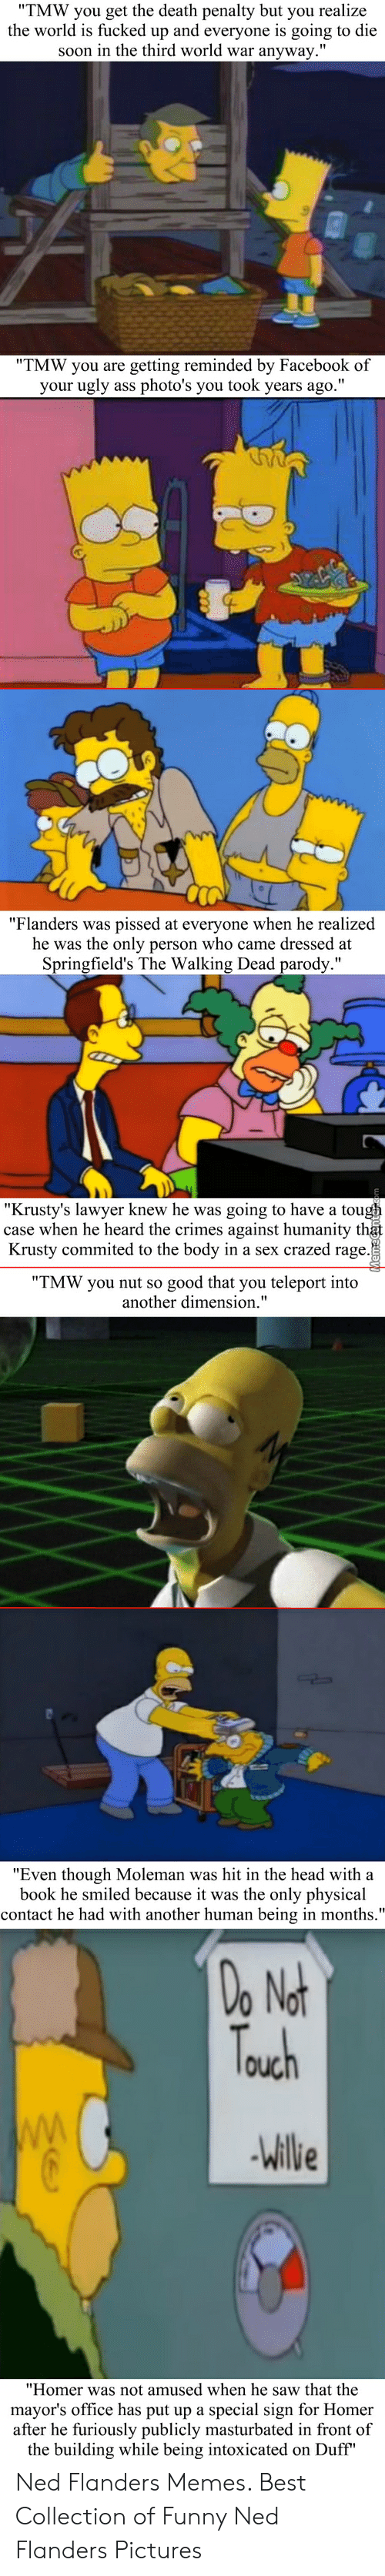 """Ned Flanders Memes: """"TMW you get the death penalty but you realize  the world is fucked up and everyone is going to die  soon in the third world war anyway.""""  """"TMW you are  getting reminded by Facebook of  your ugly ass photo's you took years ago.""""  """"Flanders was  he was the only person who came dressed at  Springfield's The Walking Dead parody.""""  pissed at everyone when he realized  """"Krusty's lawyer knew he was going to have a tough  case when he heard the crimes against humanity that  Krusty commited to the body in a sex crazed rage.  """"TMW you nut so  good that you teleport into  another dimension.""""  """"Even though Moleman was hit in the head with a  book he smiled because it was the only physical  contact he had with another human being in months.""""  Do  Not  Truch  WW  Willie  """"Homer was not amused when he saw that the  mayor's office has put up a special sign for Homer  after he furiously publicly masturbated in front of  the building while being intoxicated on Duff"""" Ned Flanders Memes. Best Collection of Funny Ned Flanders Pictures"""